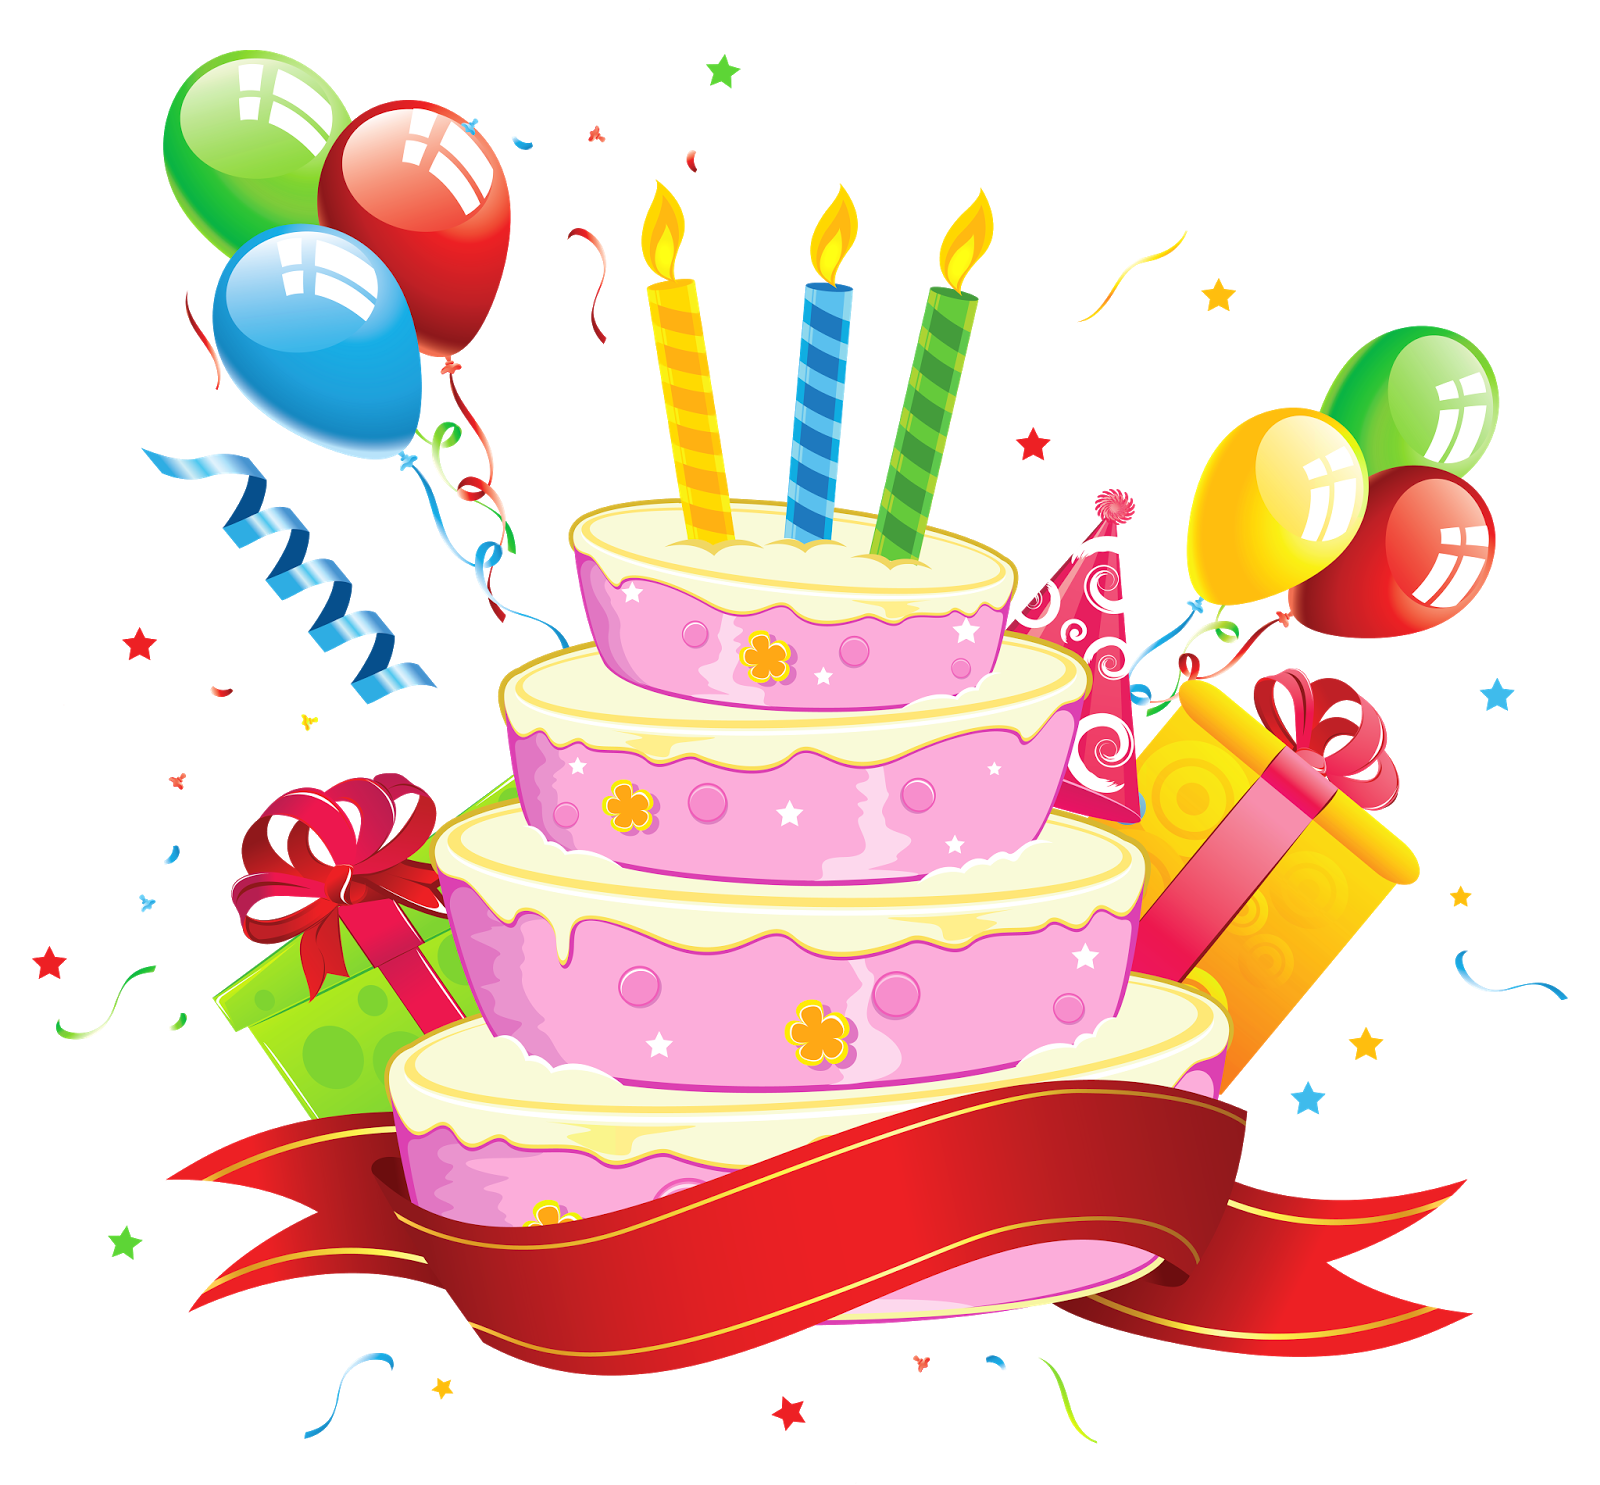 Torta Compleanno Immagini Animate.2 Bp Blogspot Com Opxudg1uzfs Vr2urhn8ugi Aaaaaaaabus Dy R8wpp8rq S1600 Birthday Cake Transparent Buon Compleanno Torte Di Buon Compleanno Torte Di Compleanno